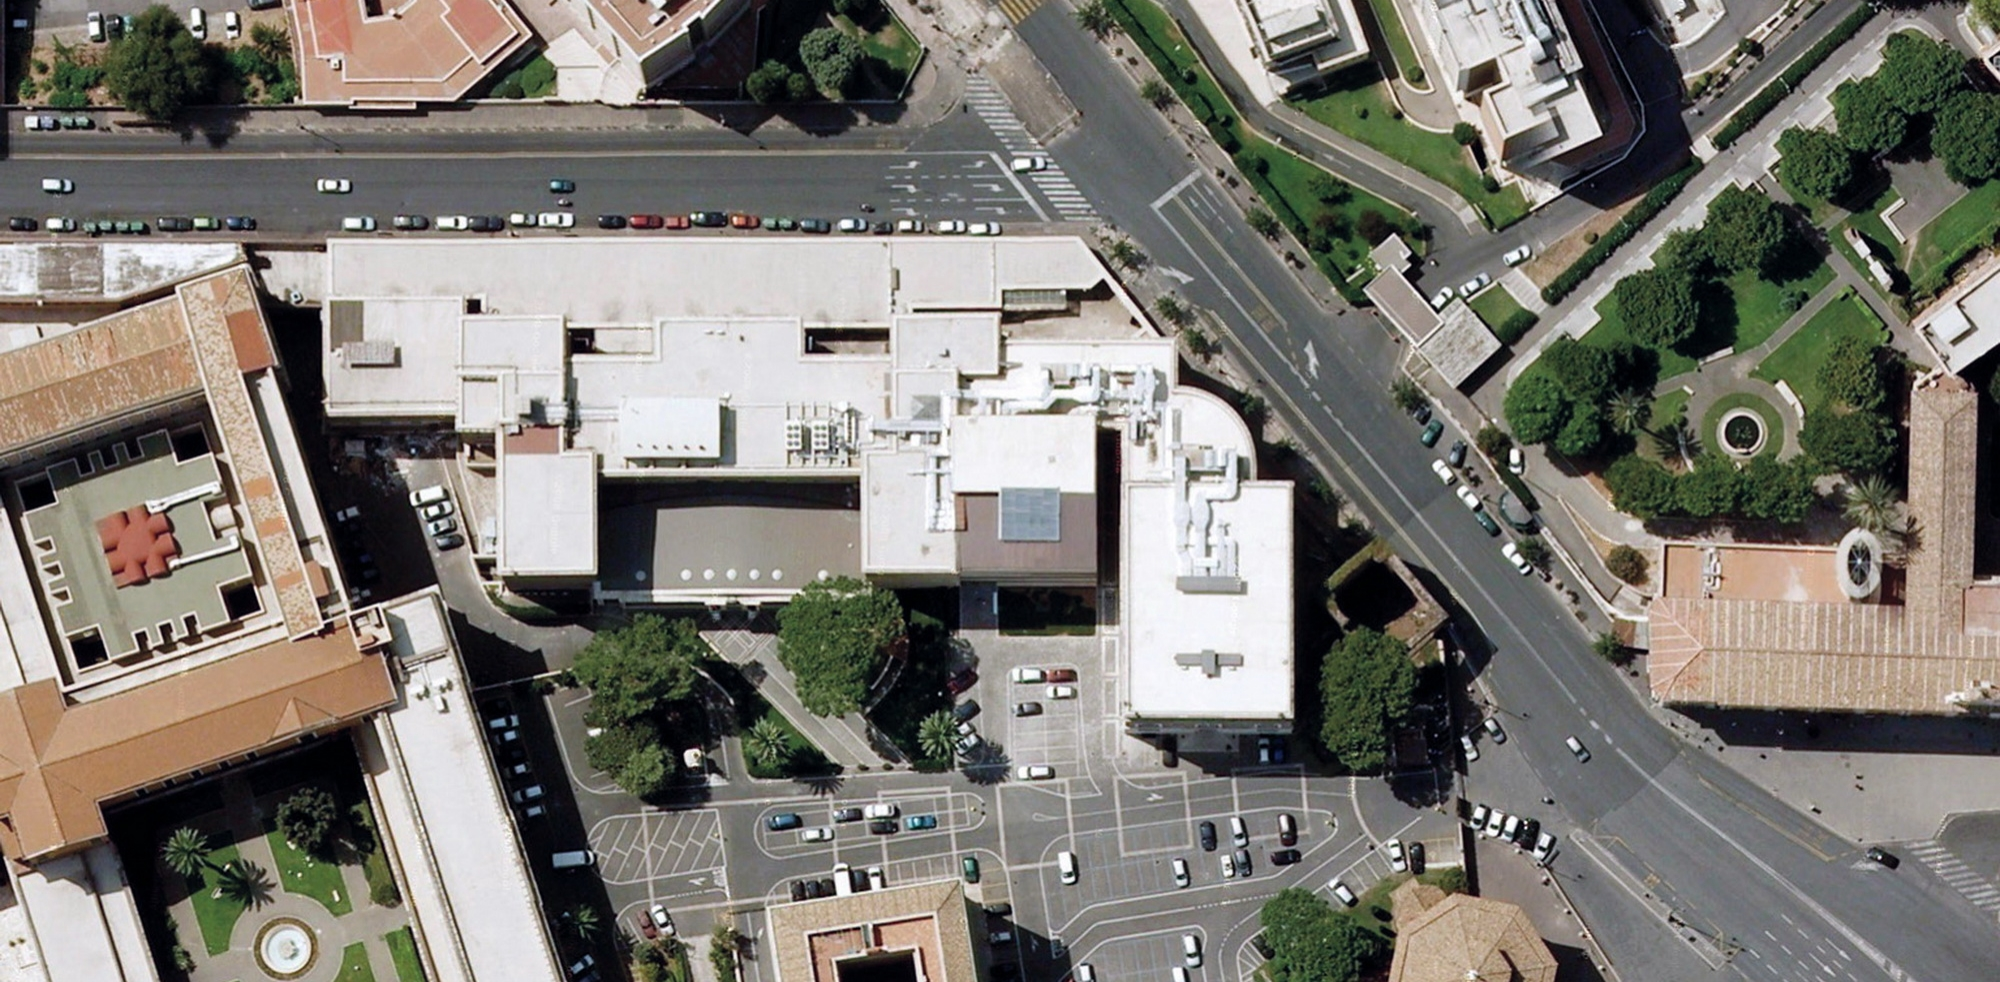 aerial photo of the library     The bulk of them are now deposited in the newly restored underground vaults as in the original plan; in the assembly hall block towards the entrance gate. The 25,000 volumes of antique books are kept separately in a humidity controlled archive for better conservation.   Originally the reading rooms of the library were dispersed around the university and on the ground floor of the assembly hall block. They are now replaced by the ground floor entrance foyer to the Aula Magna (Main Assembly Hall) and the librarians' offices.